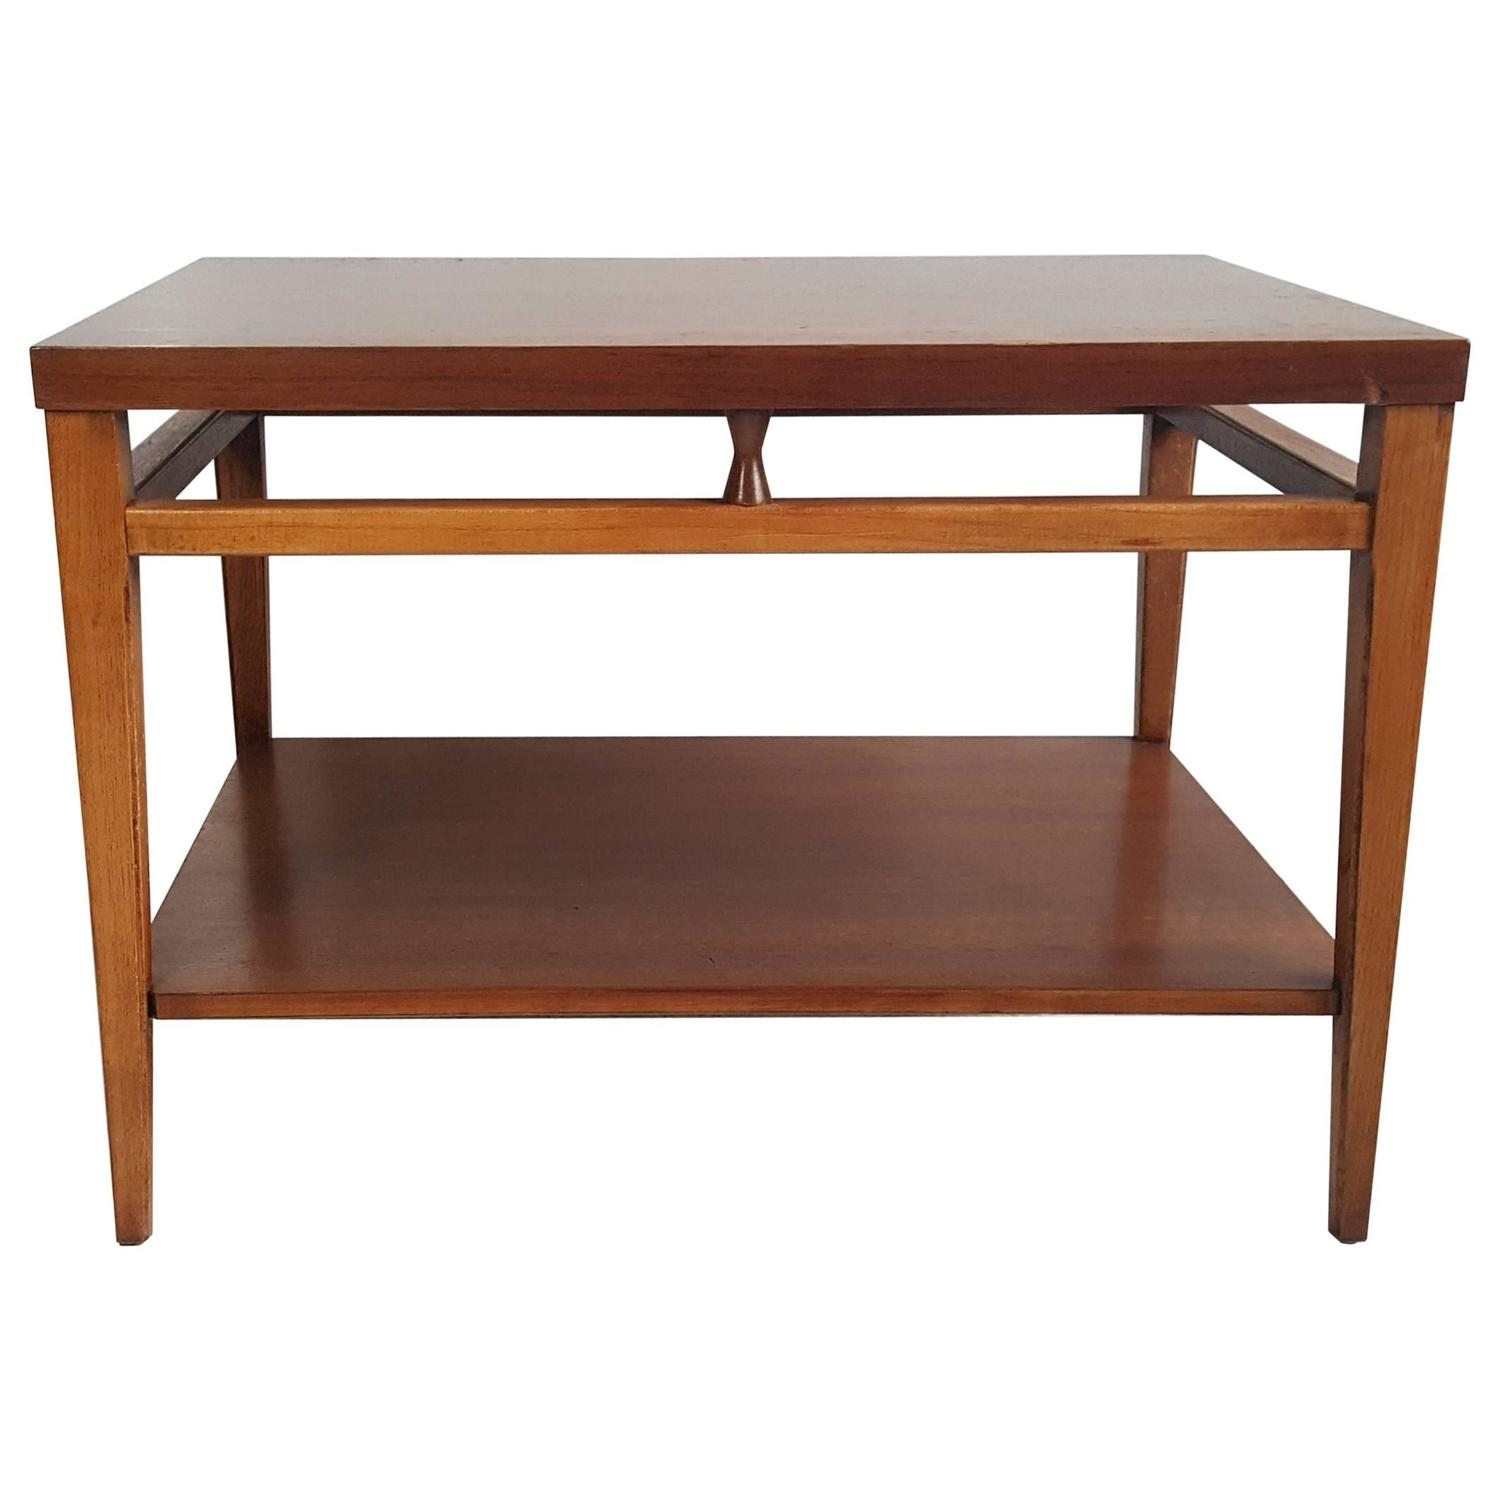 mid century modern walnut and rosewood end table quottuxedo antique accent olcott tray top grey coffee ikea floating shelves mirrored sofa silver patio furniture toronto side